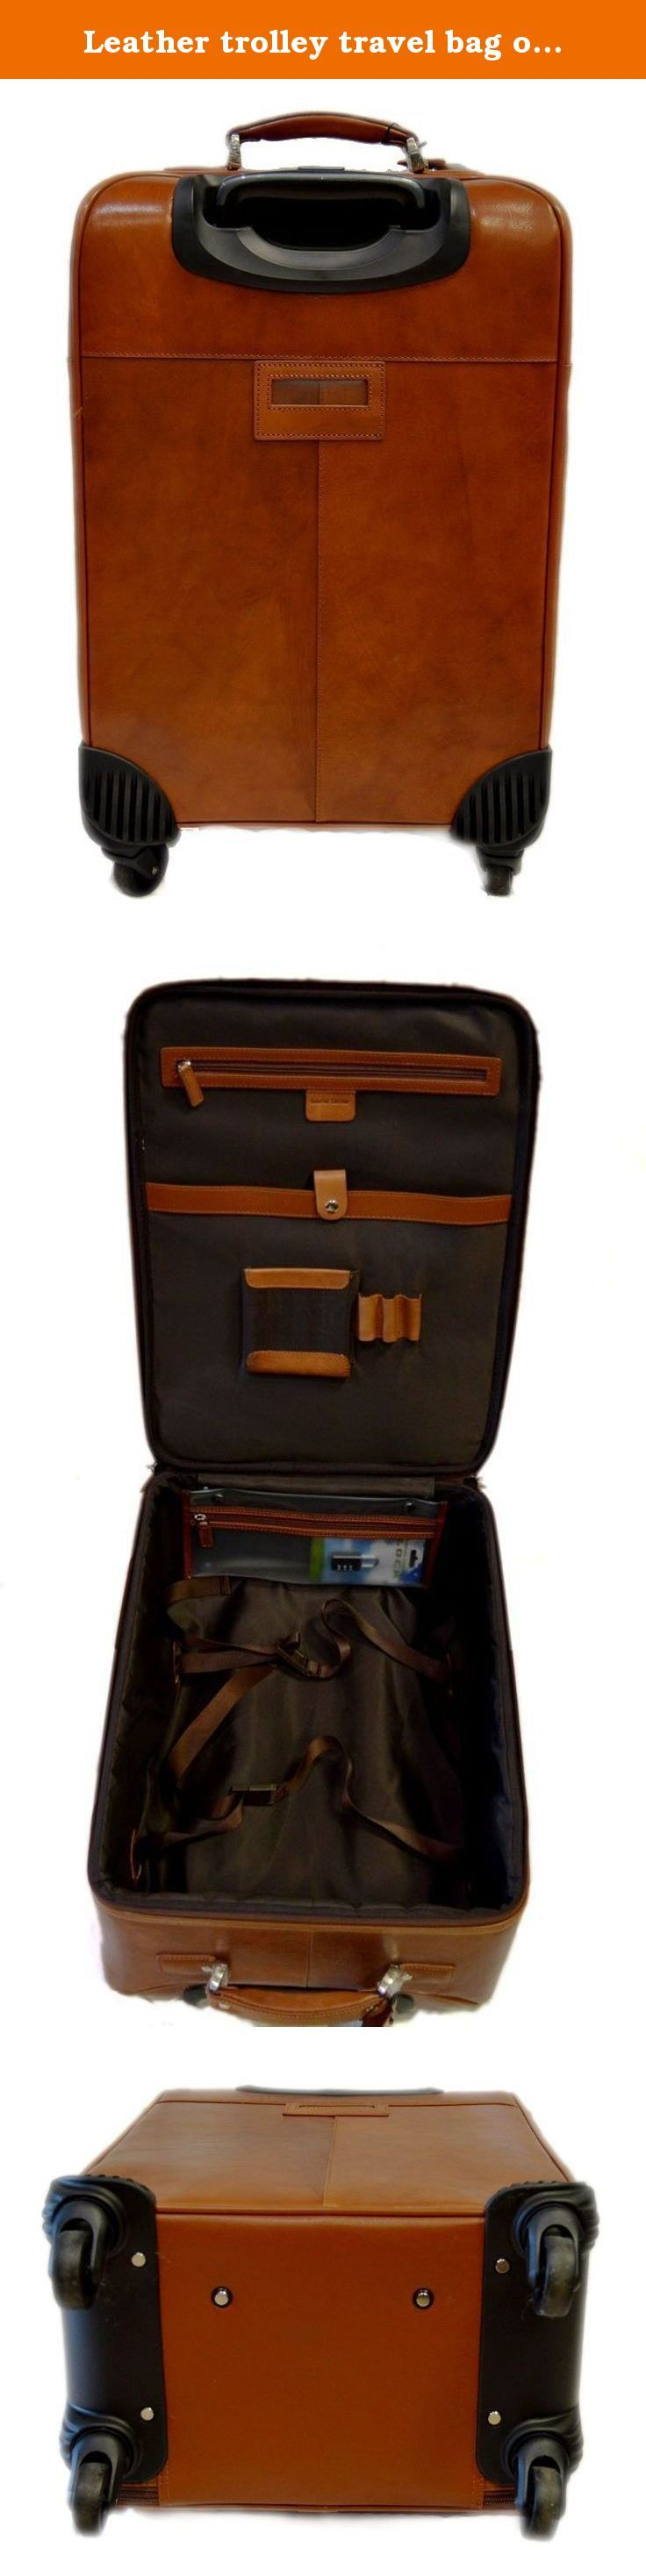 Leather trolley travel bag on 4 wheels weekender overnight light brown leather bag with leather cabin luggage airplane carryon airplane bag. Our handbags are manufactured 100% in Italy, handcrafted with the highest quality materials, to create a beautiful and durable product. Genuine Italian leather and fine detailing, make this an essential product to have, as good or better than any luxury item you will find in other stores. Our motto is: Made in Florence, Italy, shipped from Florence...